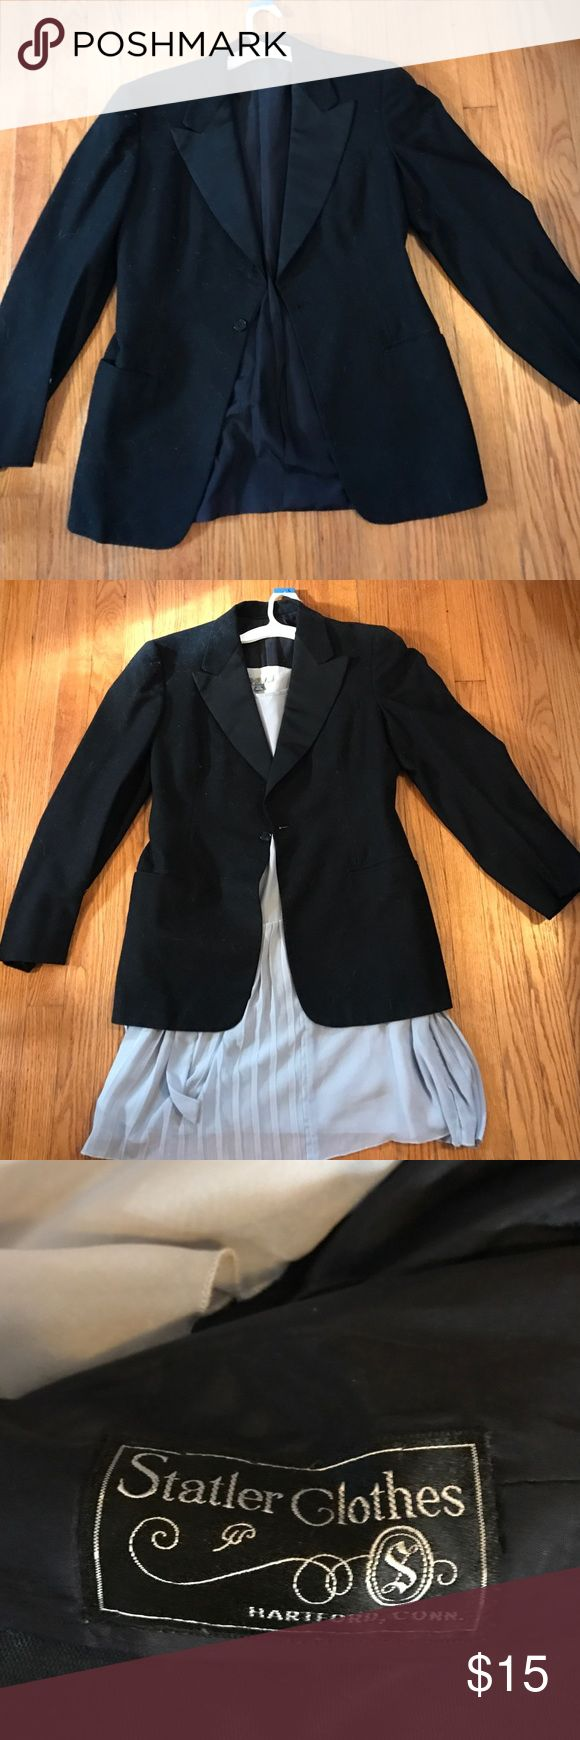 Tuxedo jacket Old fashioned tuxedo jacket perfect for pairing with that fancy dress or work outfit.  Men's small. Women's medium. Jackets & Coats Blazers